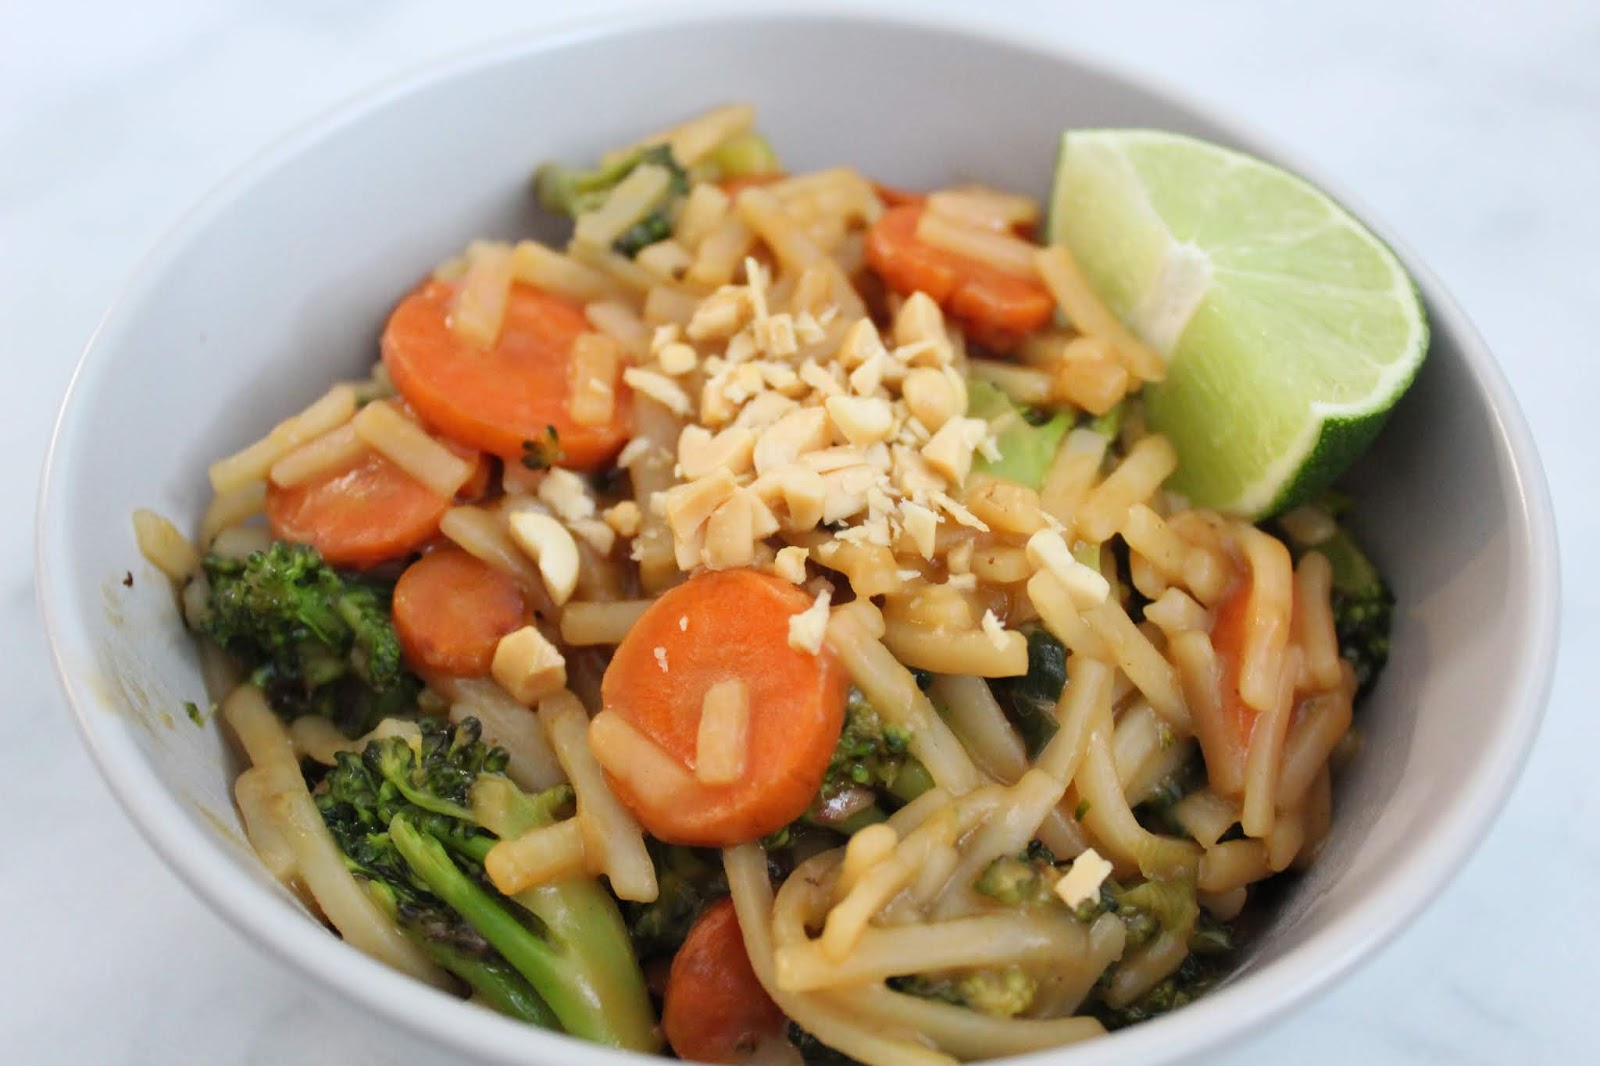 Homemade Vegan Pad Thai Recipe